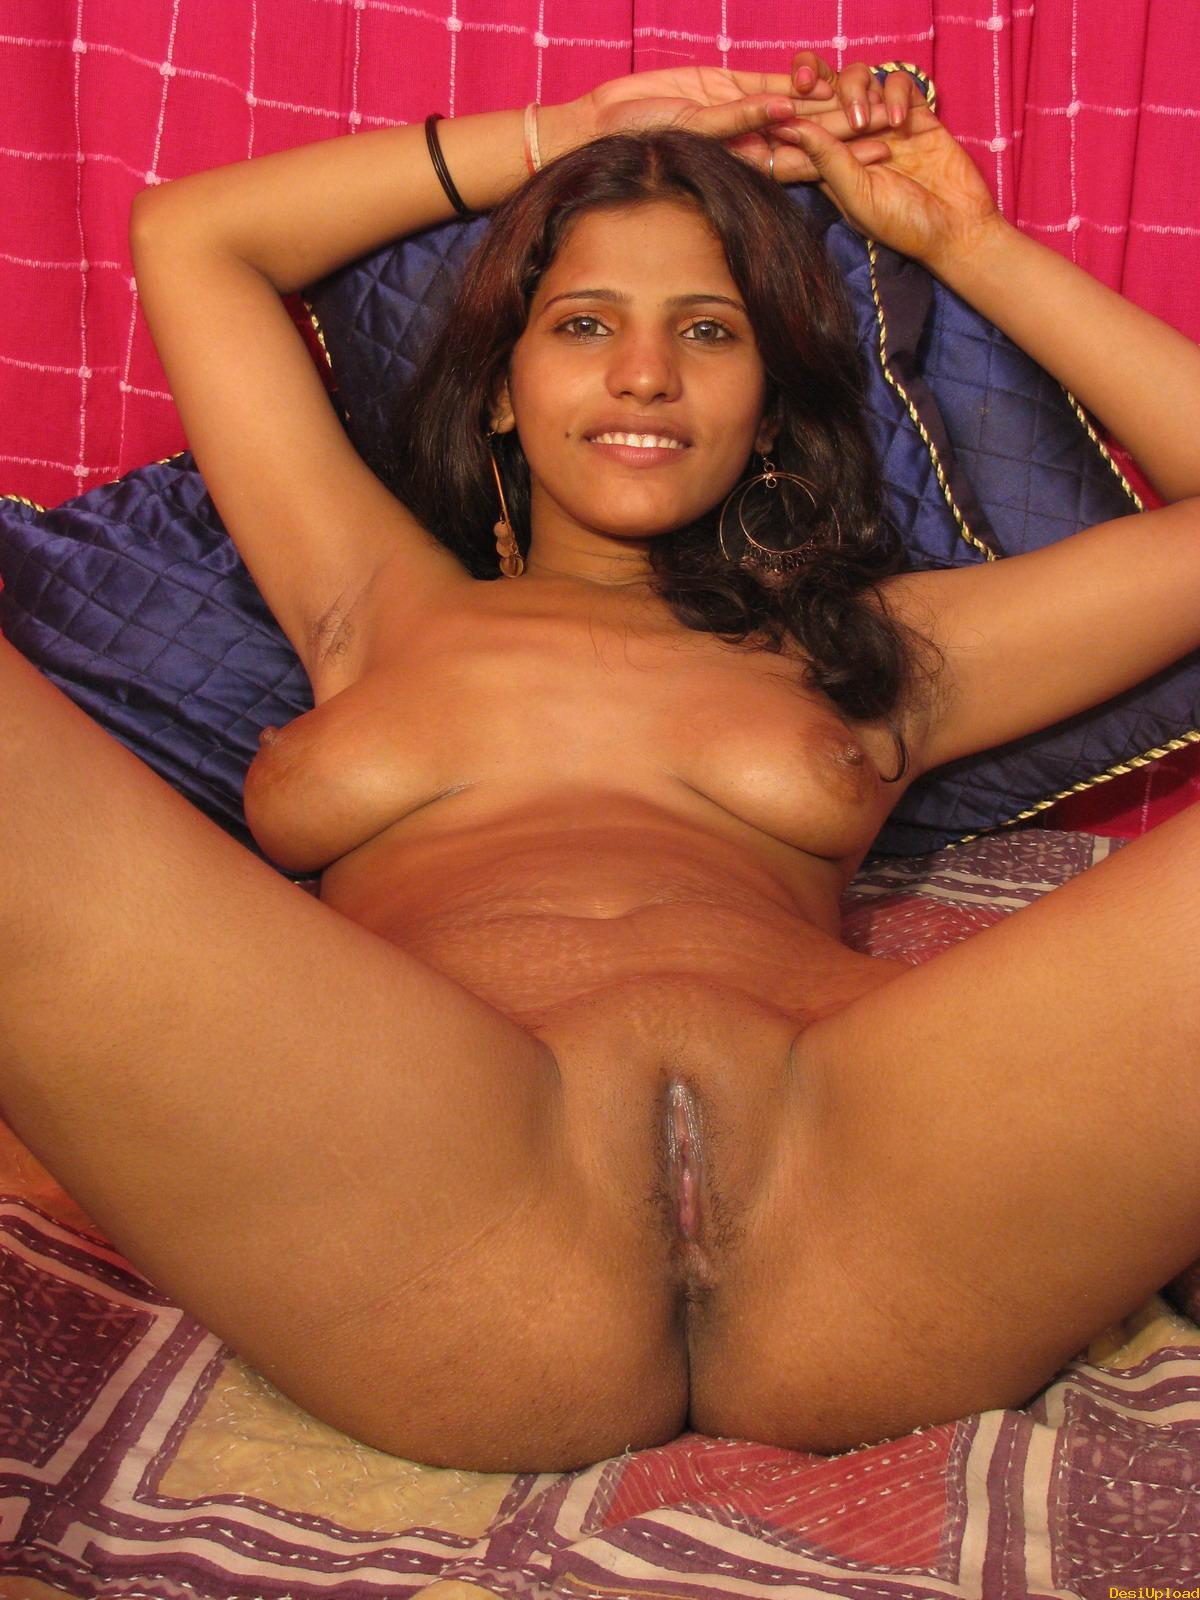 Chat Online Free India